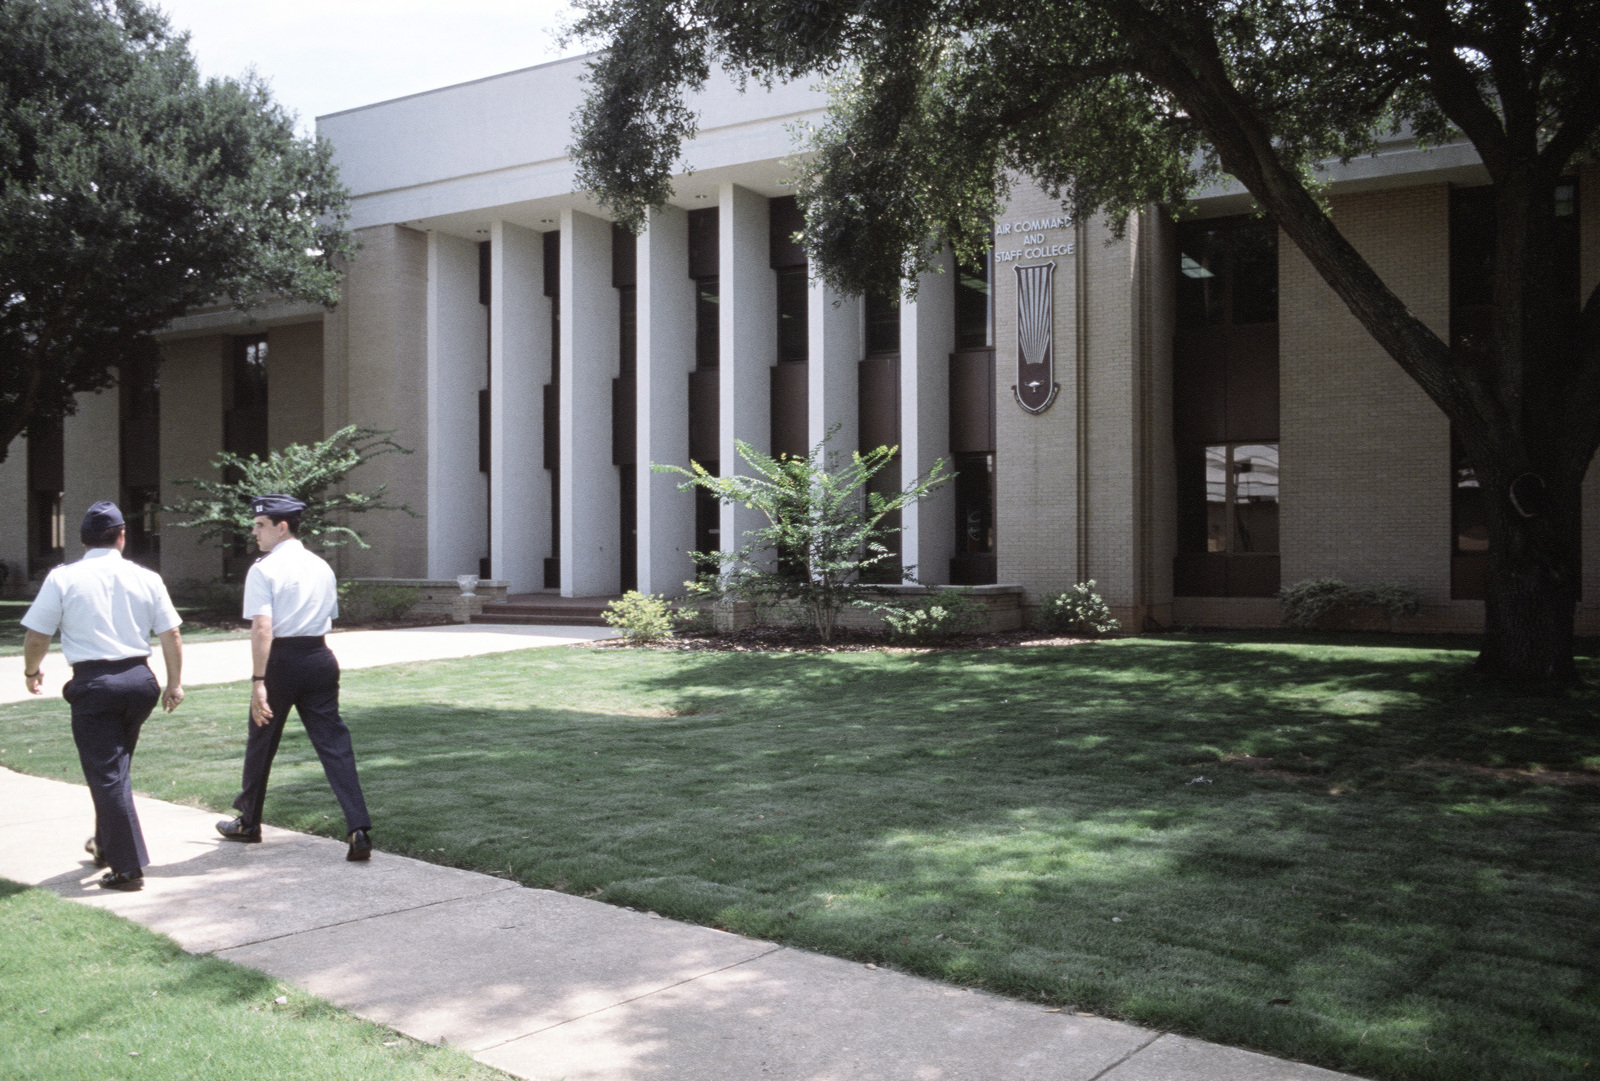 An exterior view of Air Command and STAFF College, Air University.  The university offers formal training in many areas of military studies to officers and senior non-commissioned officers in the Air Force